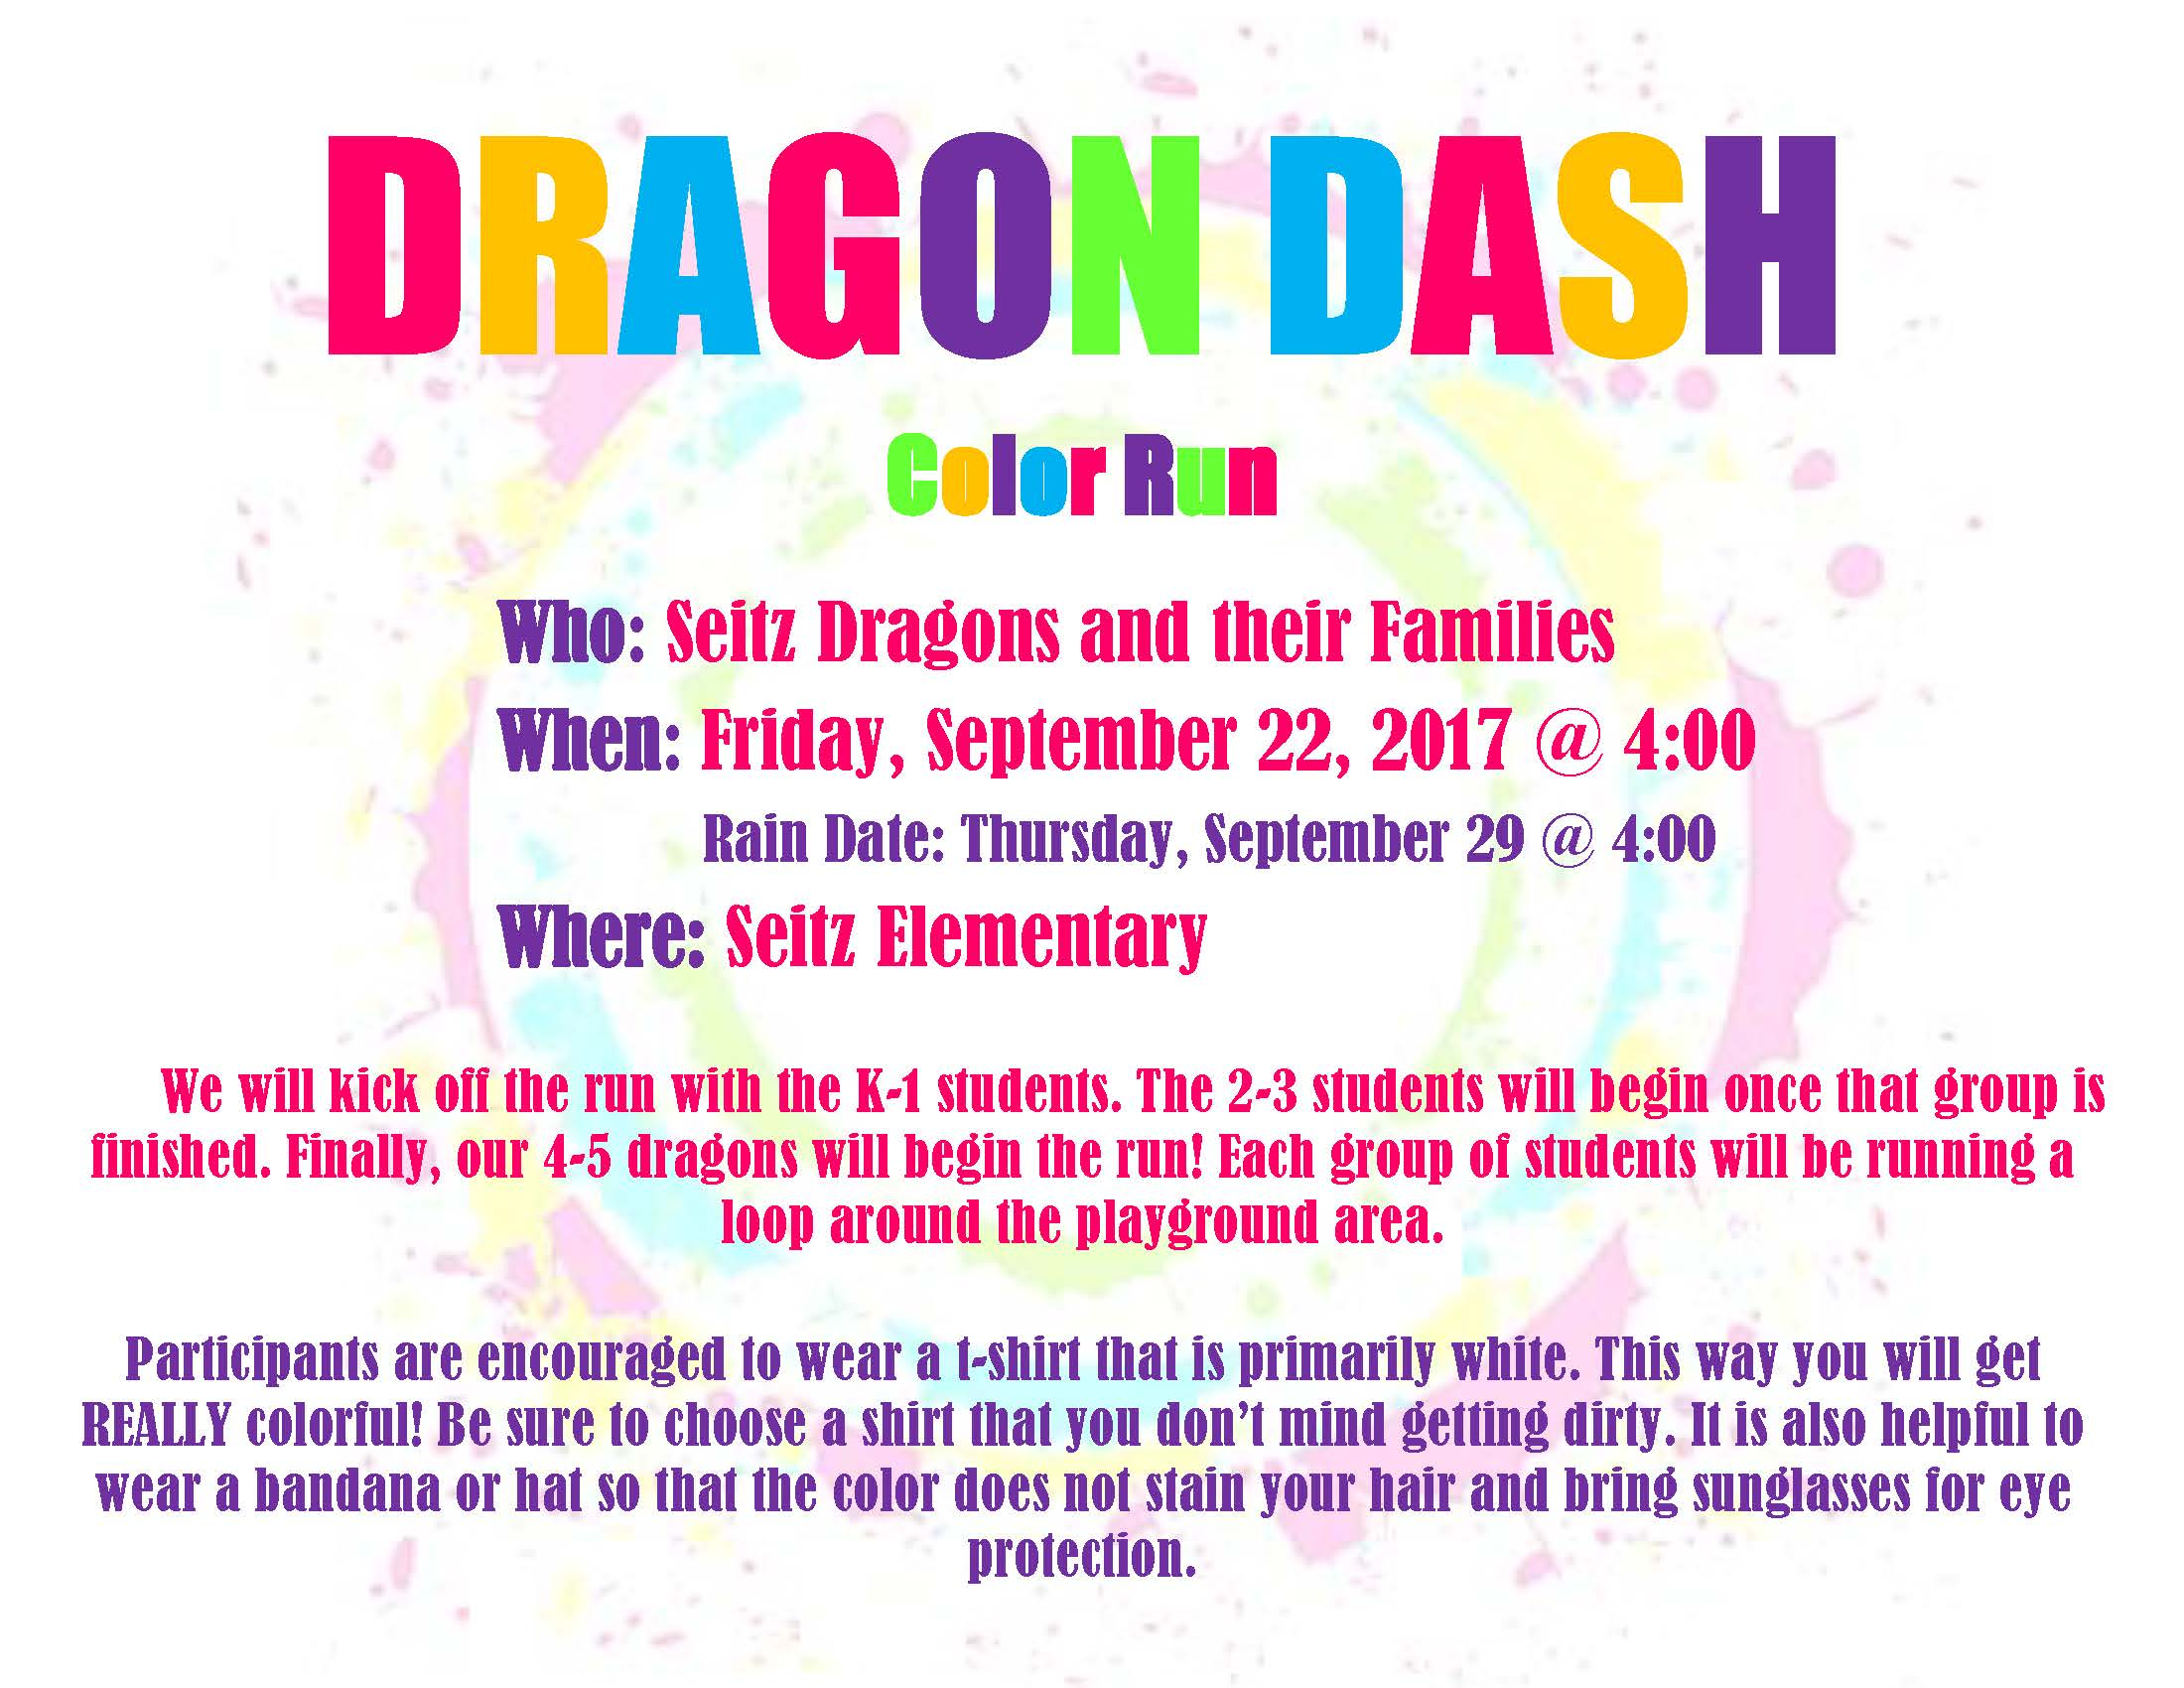 Dragon Dash Color Run Flyer